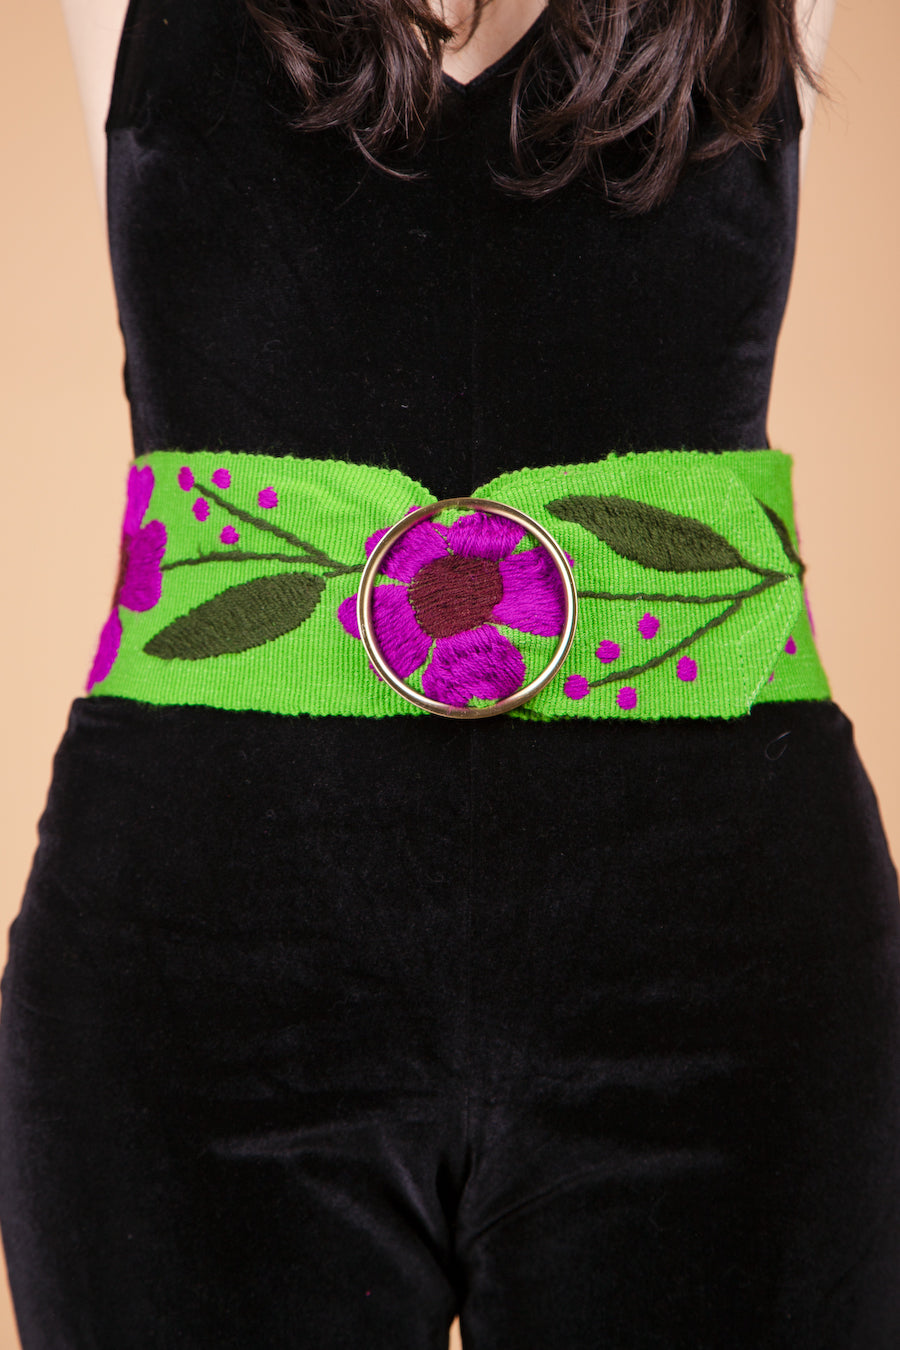 Pattie Boyd Belt in Clover